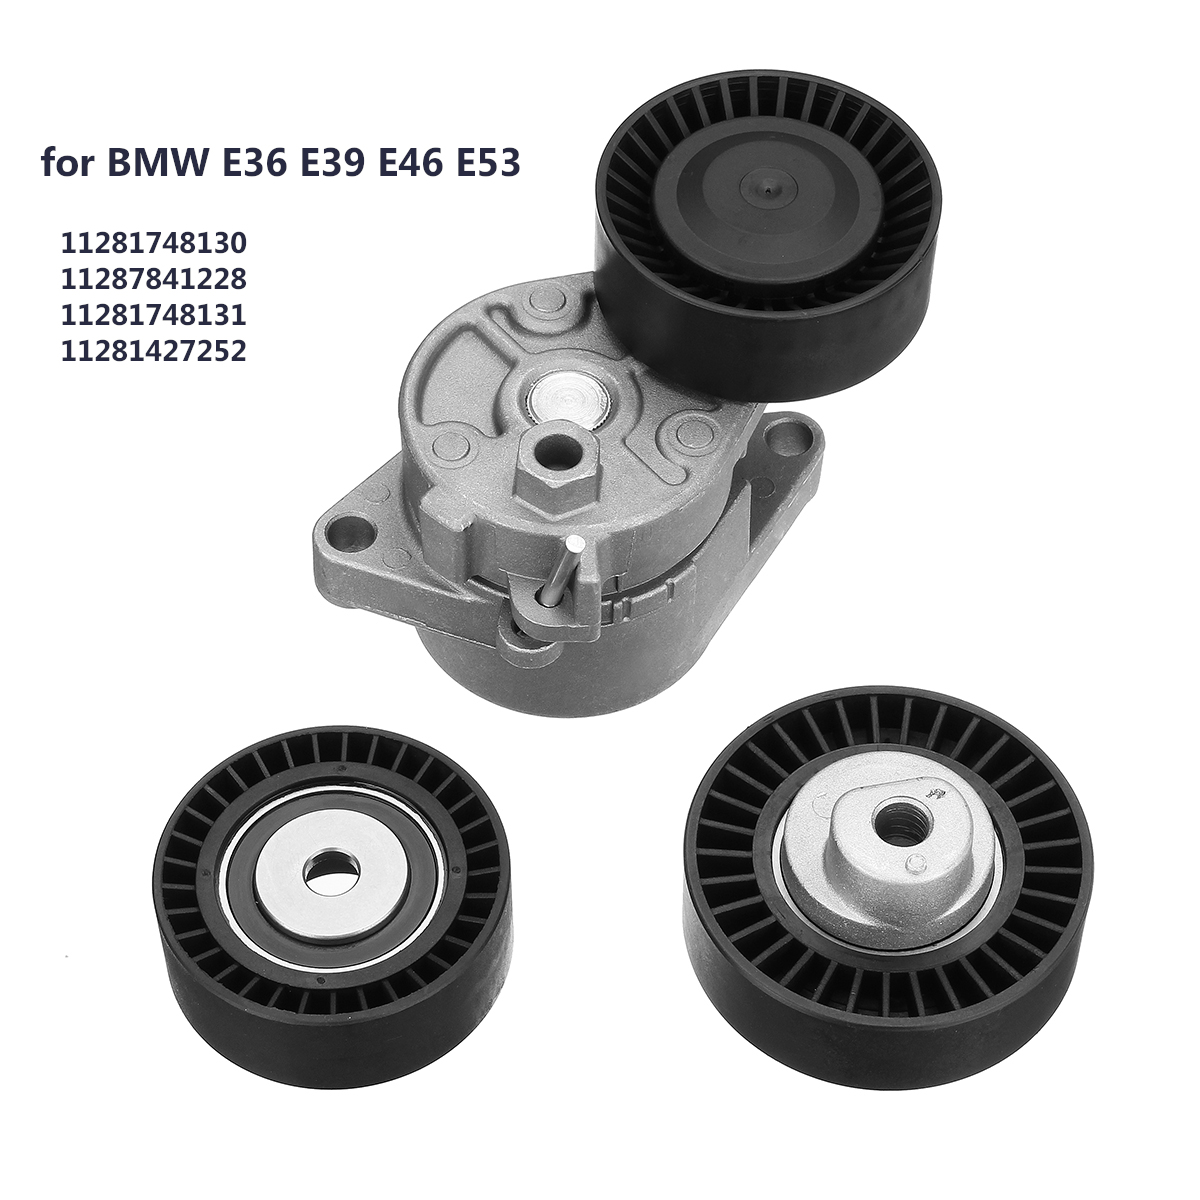 цена Set of Belt Tensioner + Idler Pulley Kit Replacement for BMW E36 E39 E46 E53 11287841228